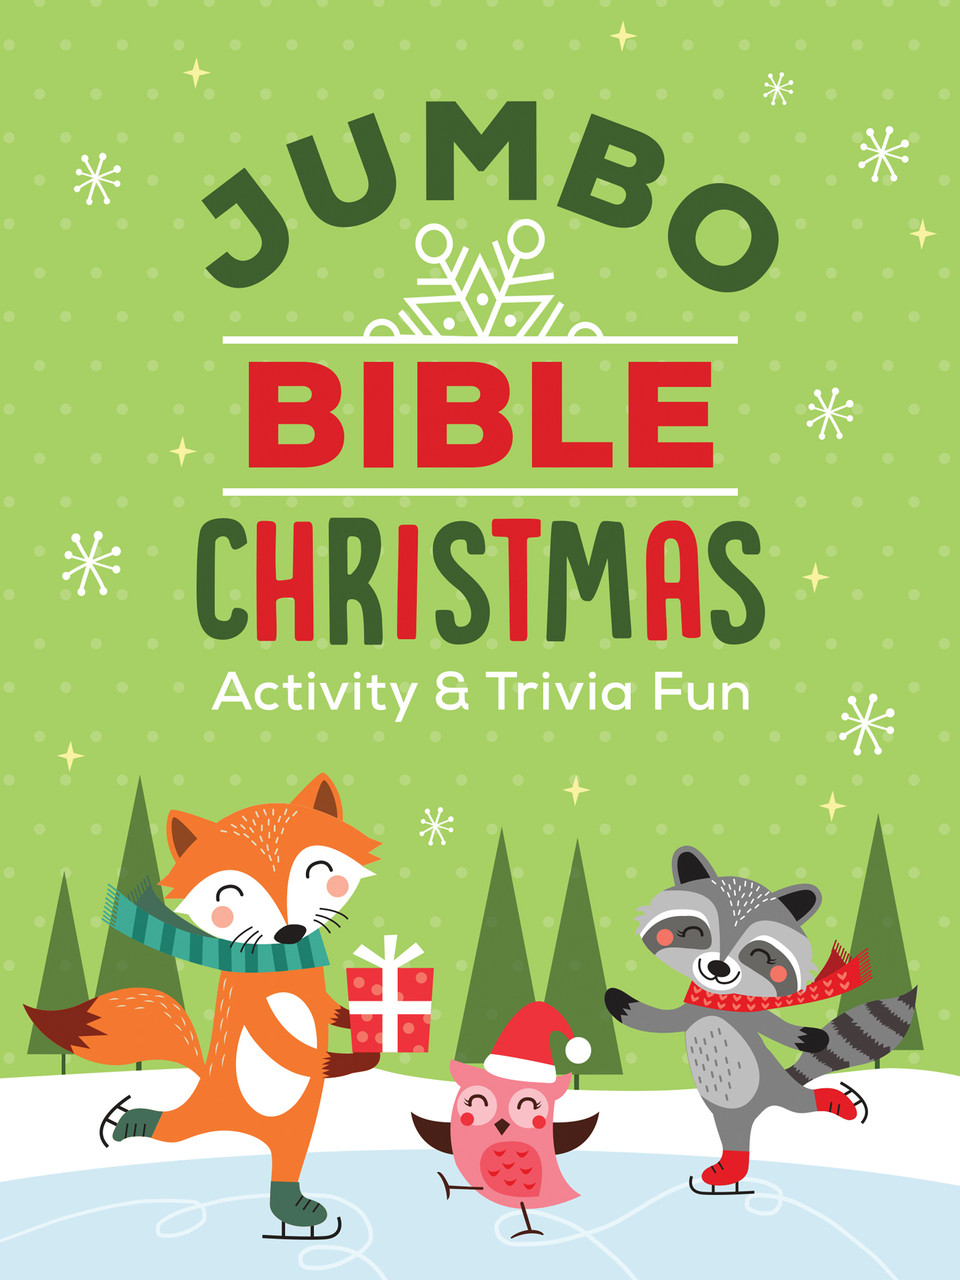 Christmas Bible Trivia.Jumbo Bible Christmas Activity Trivia Fun